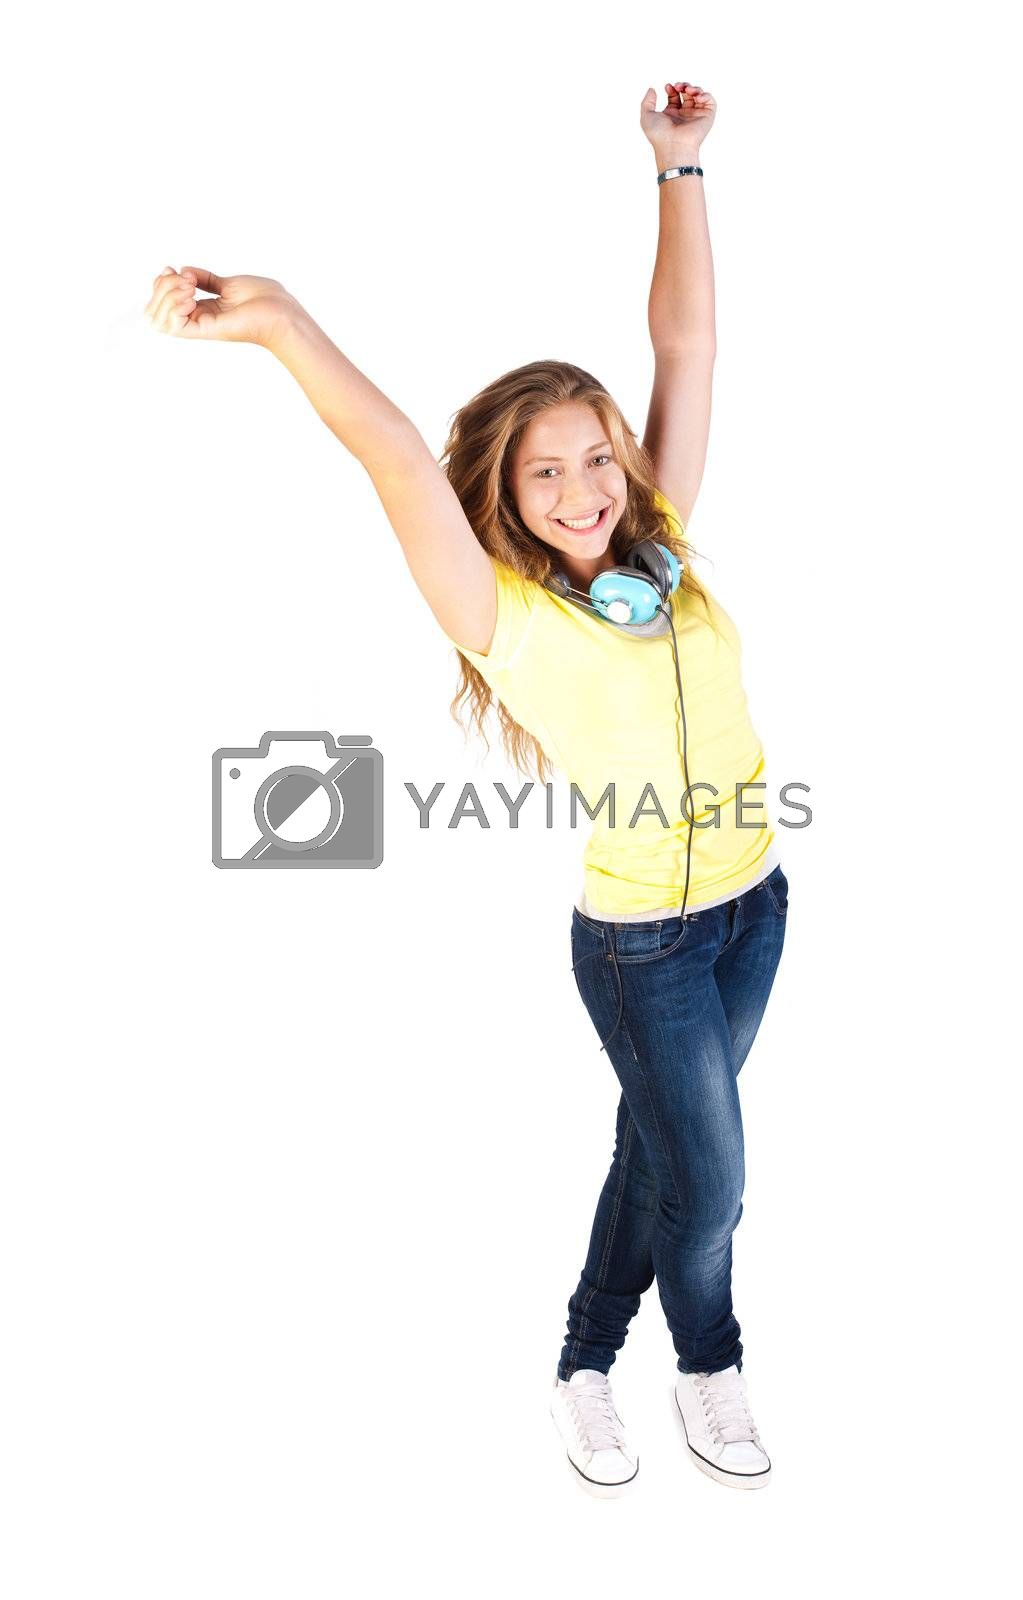 Young girl enjoying music through headphones, smiling at camera, isolated on white bacground.